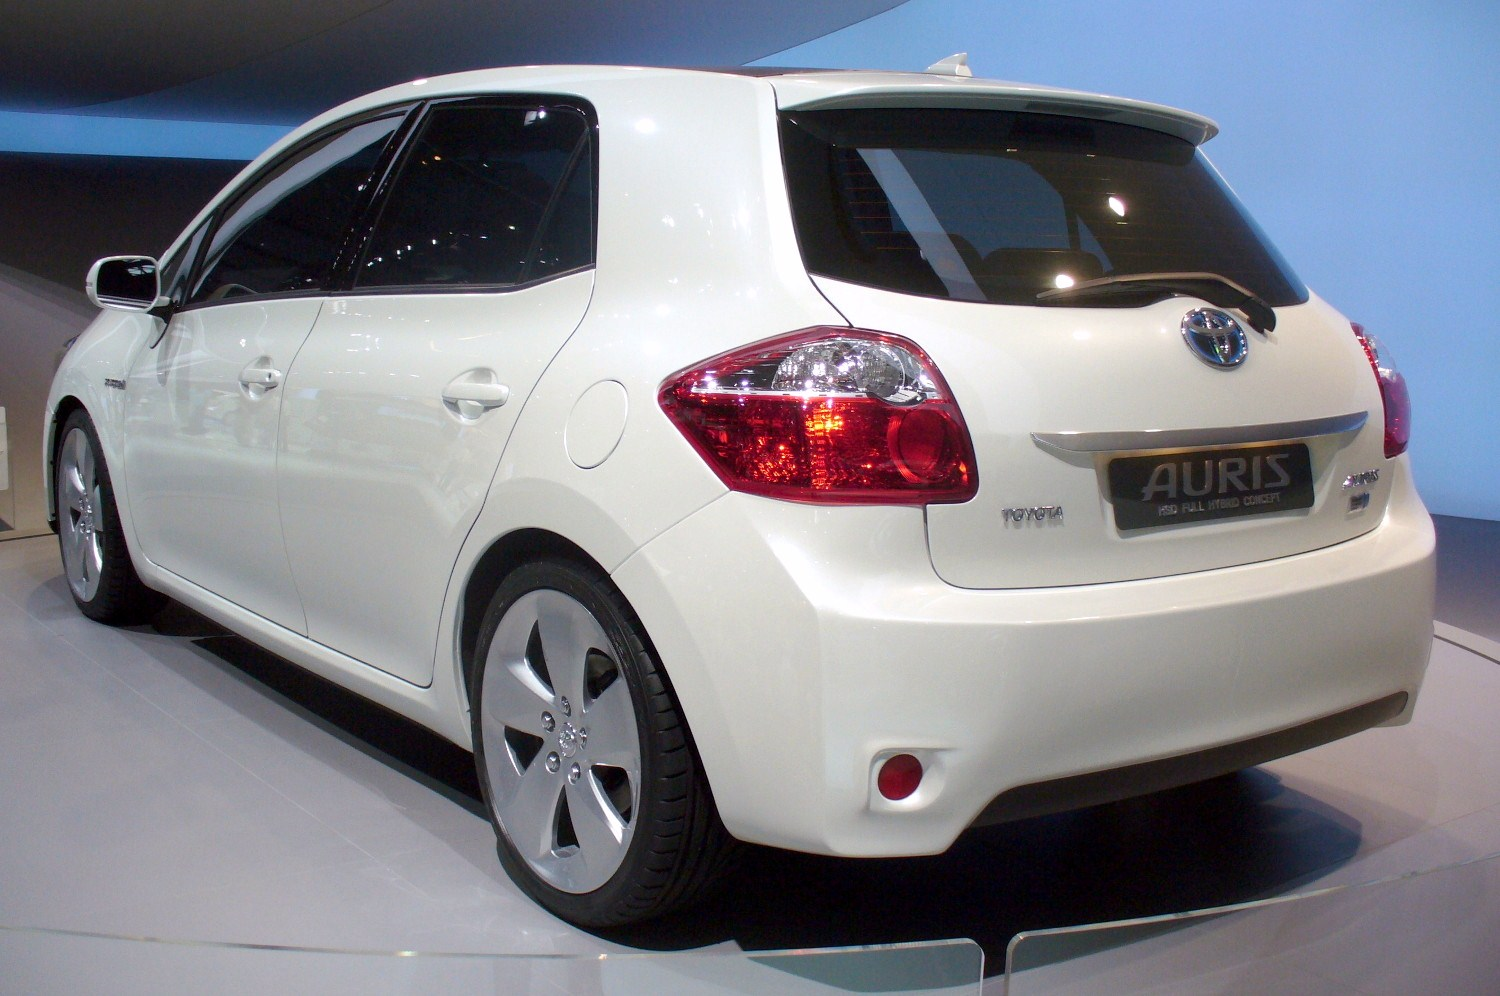 toyota auris hsd technical details history photos on better parts ltd. Black Bedroom Furniture Sets. Home Design Ideas